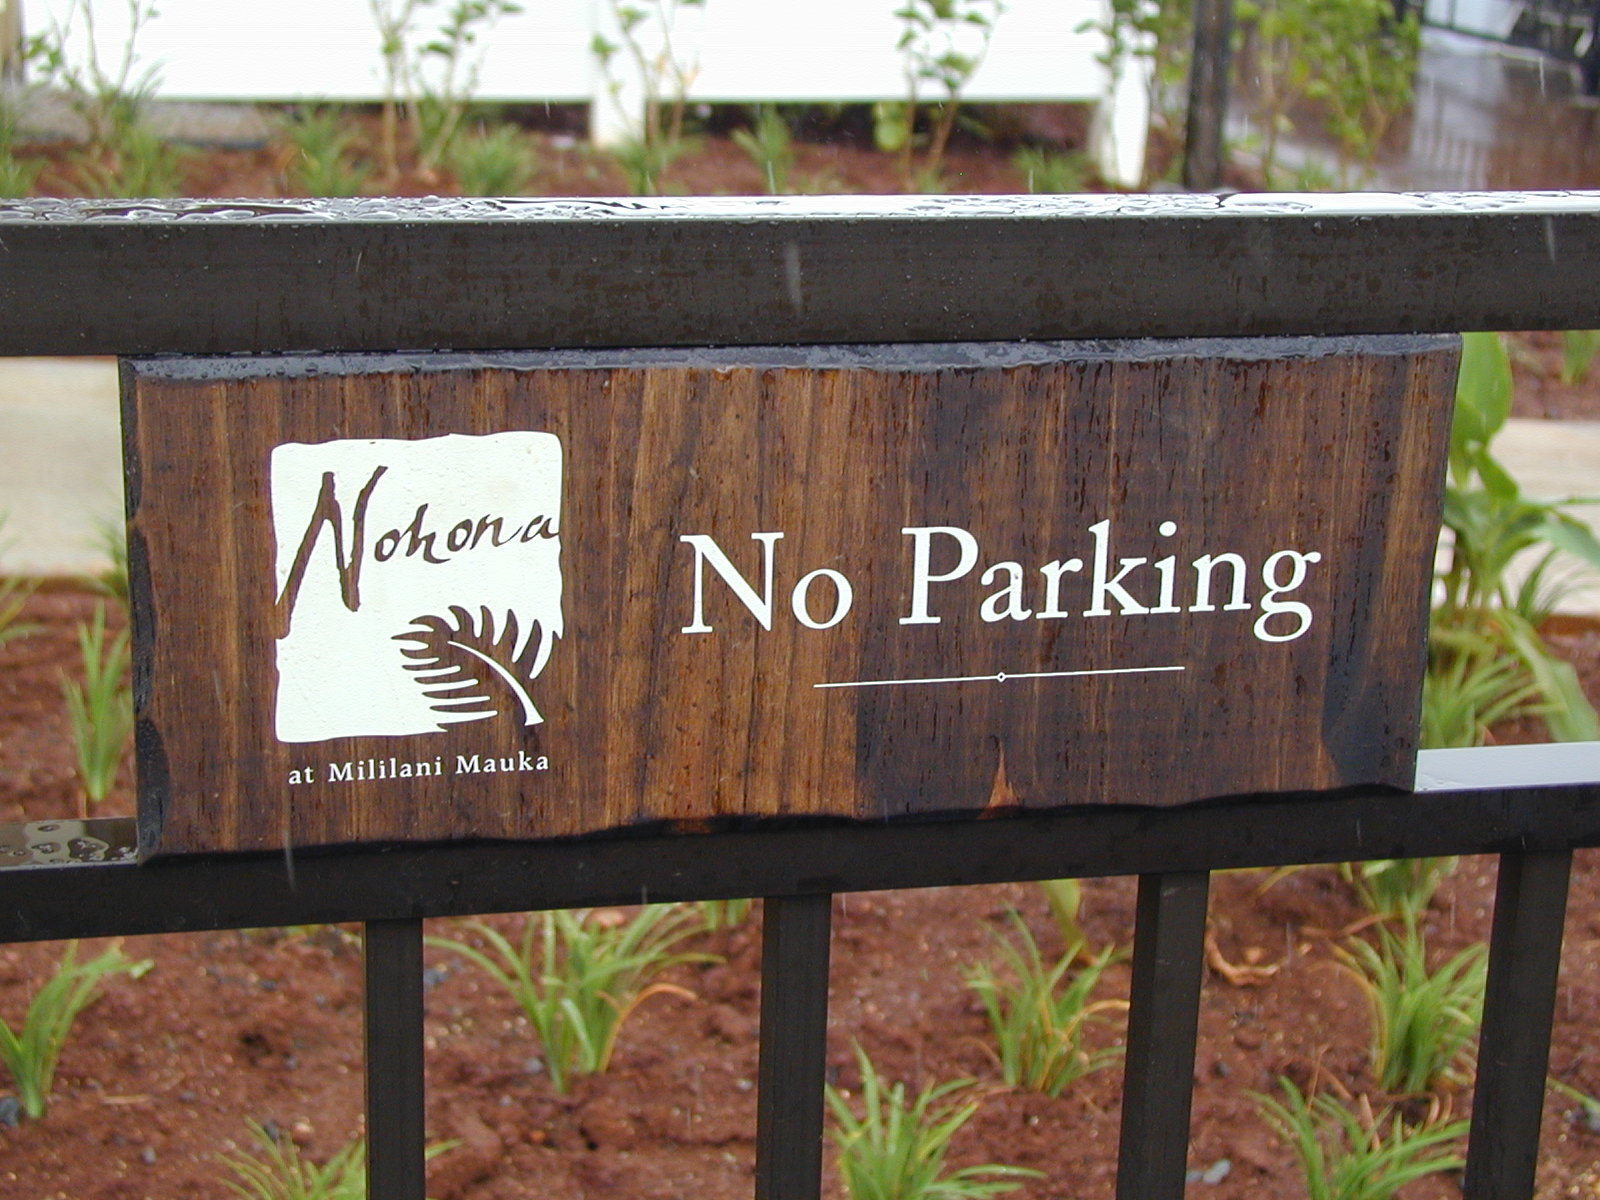 Nohona Parking Sign